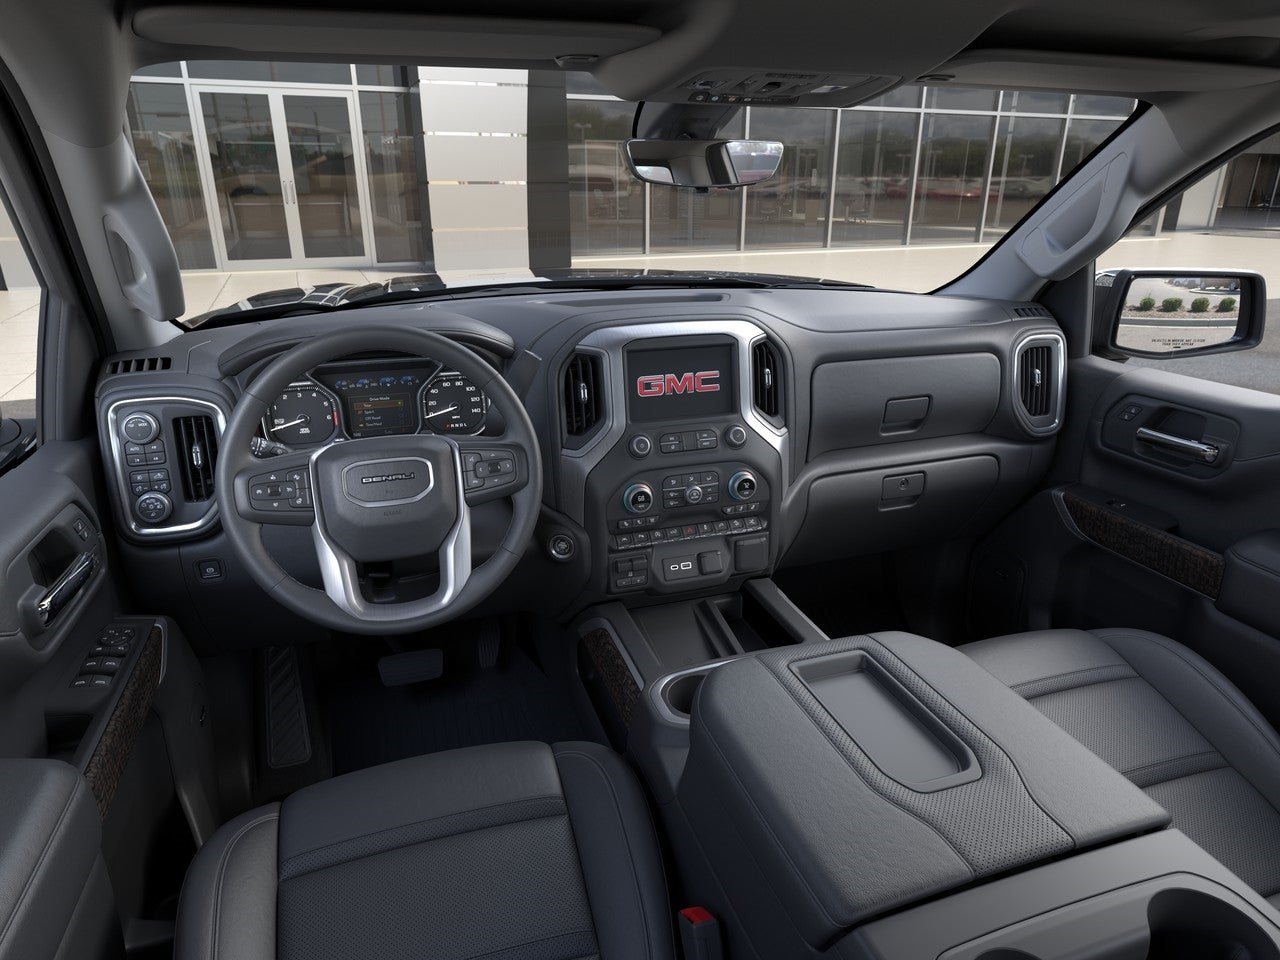 2020 GMC Sierra 1500 Crew Cab 4x4, Pickup #T20434 - photo 25